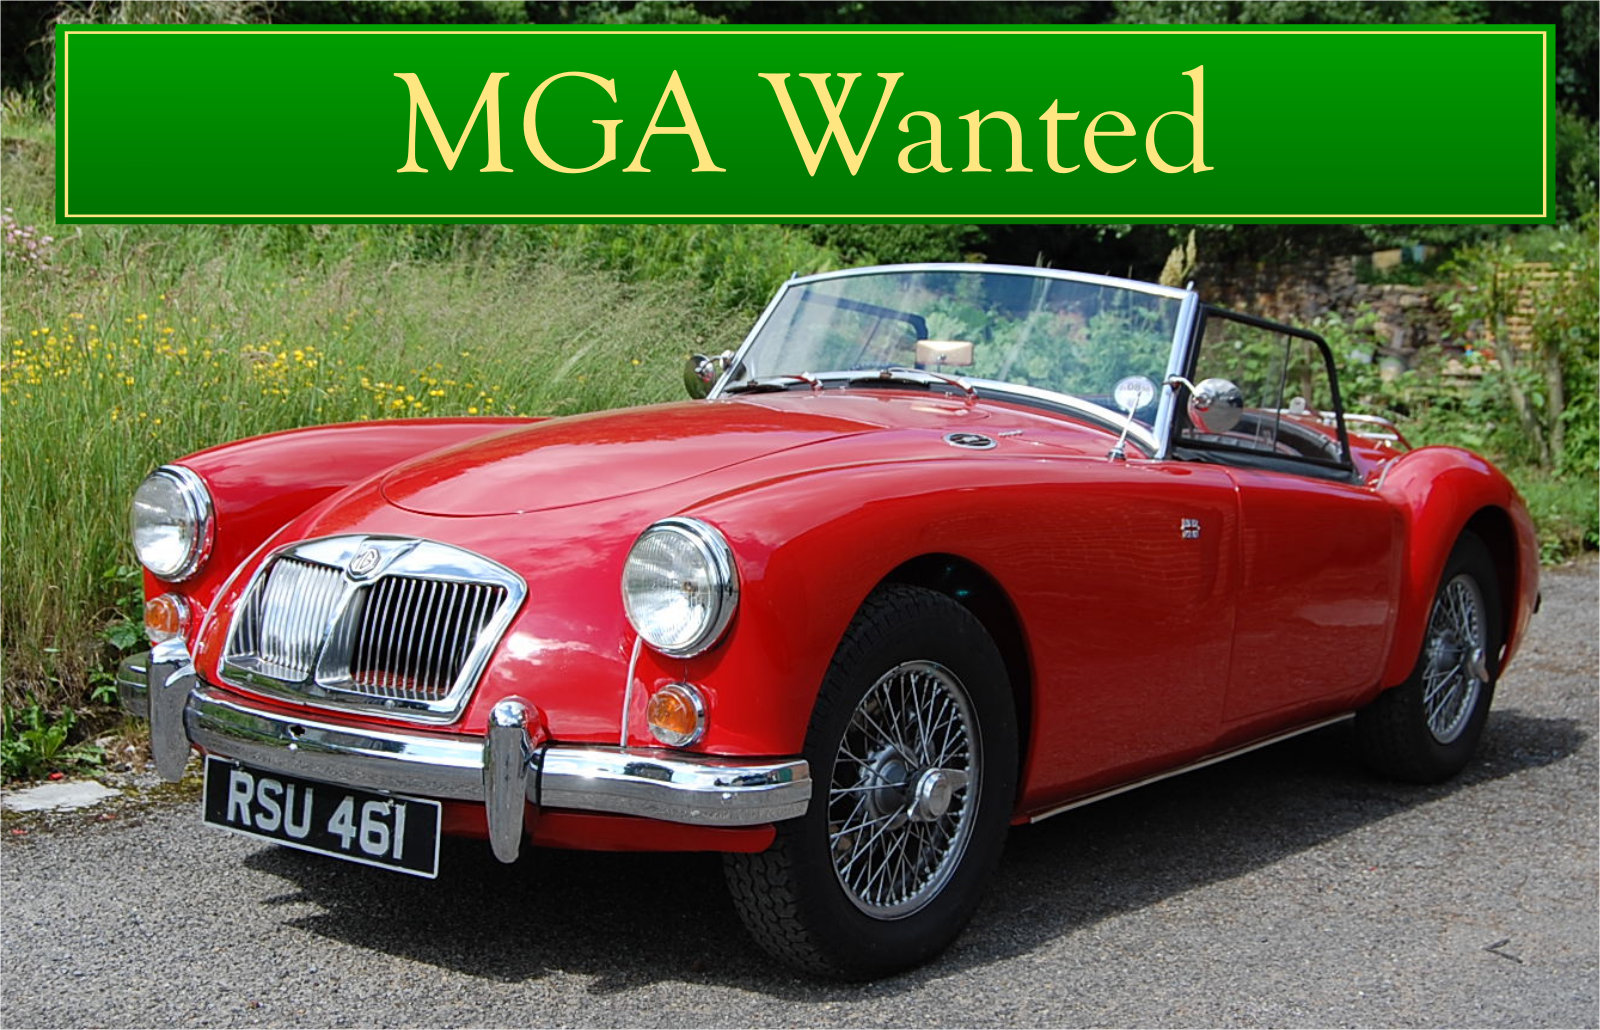 1955  TRIUMPH TR2 WANTED, CLASSIC CARS WANTED, QUICK PAYMENT Wanted (picture 6 of 6)